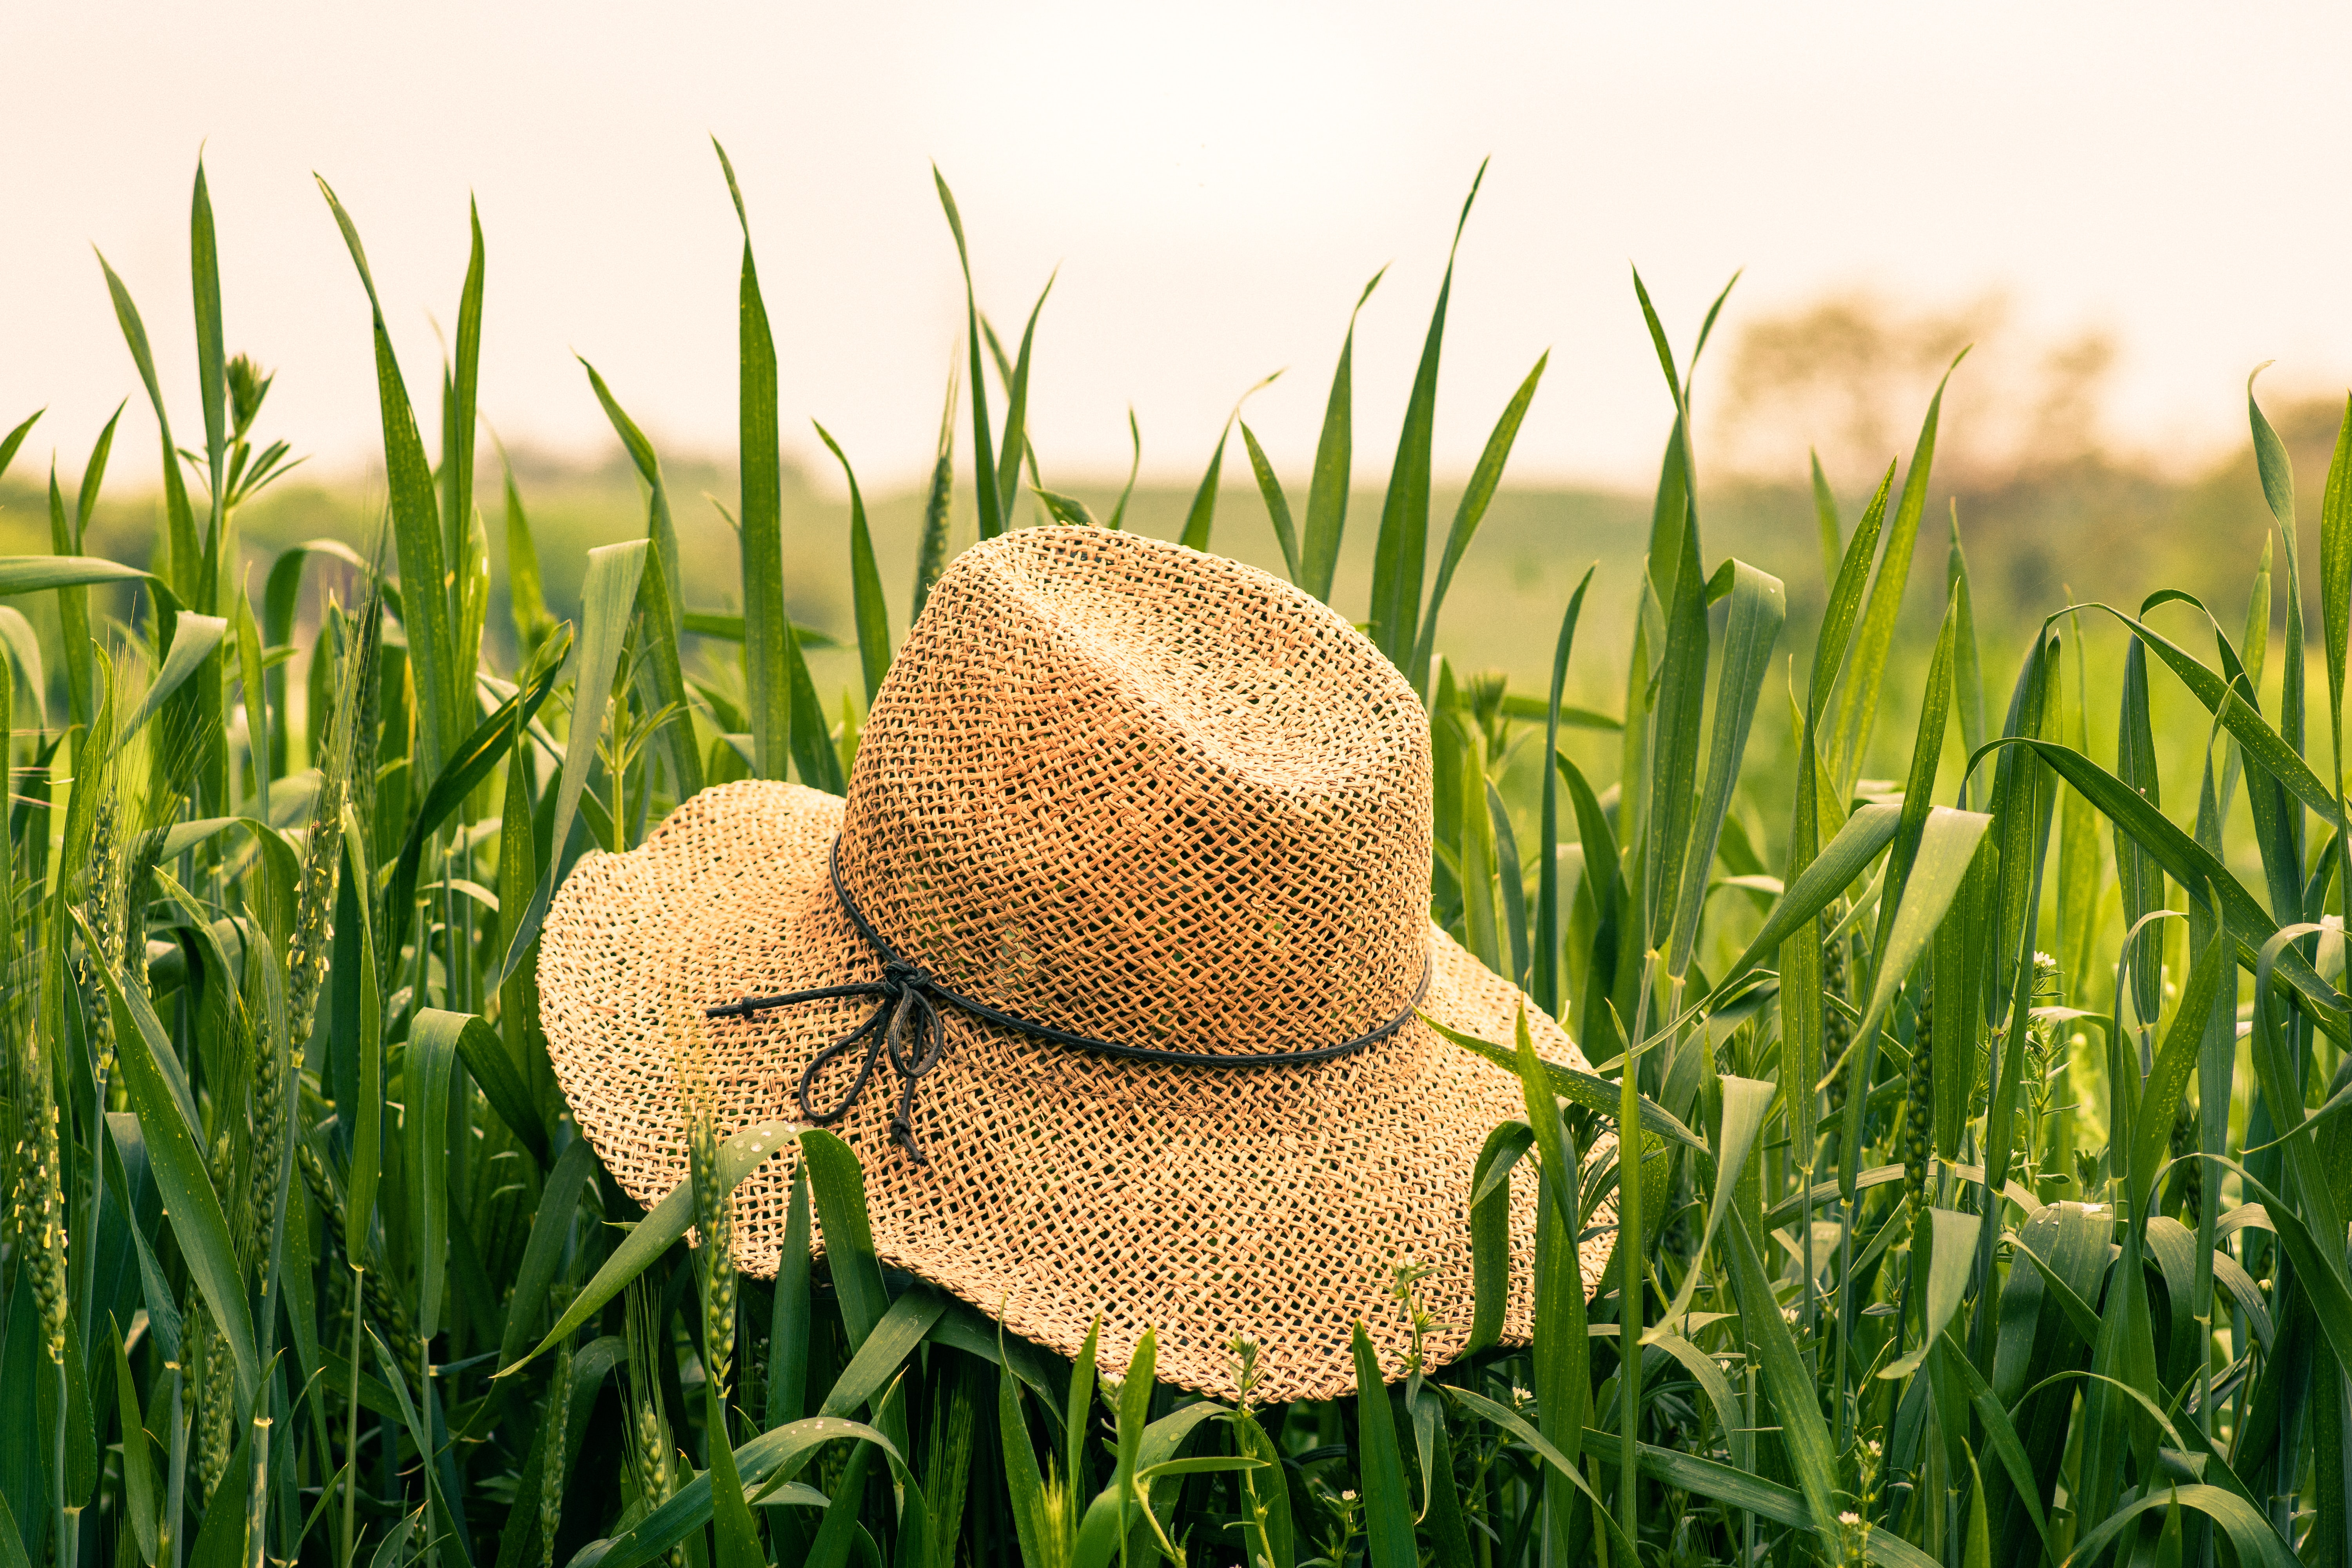 A straw hat sitting on grass in a field in Caracal